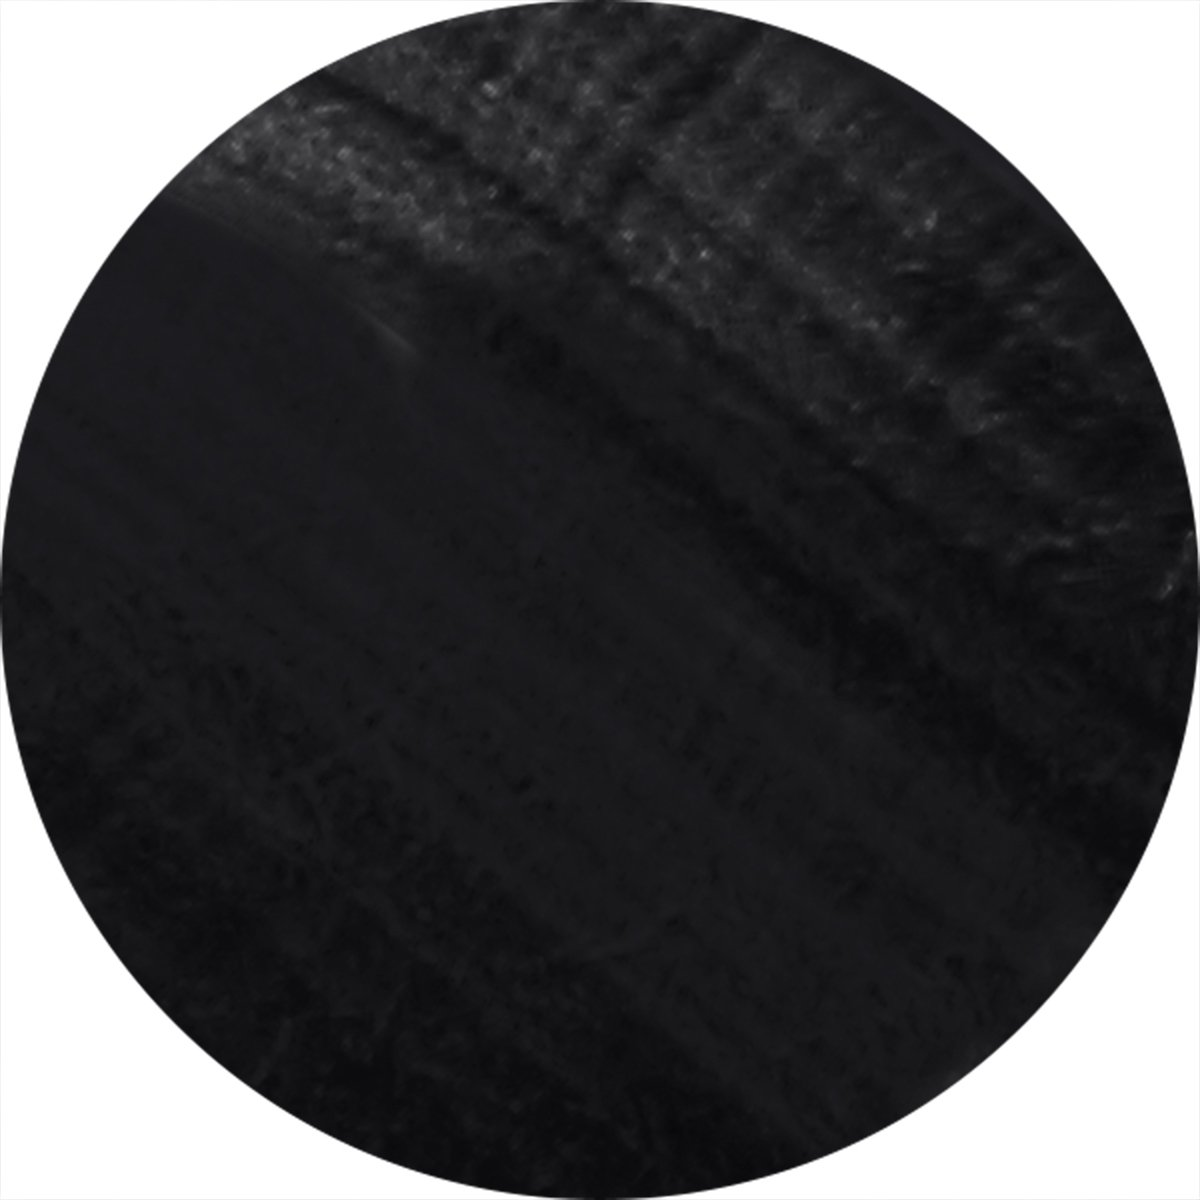 LORAC Front of the Line PRO Liquid Eyeliner, Black by LORAC (Image #2)